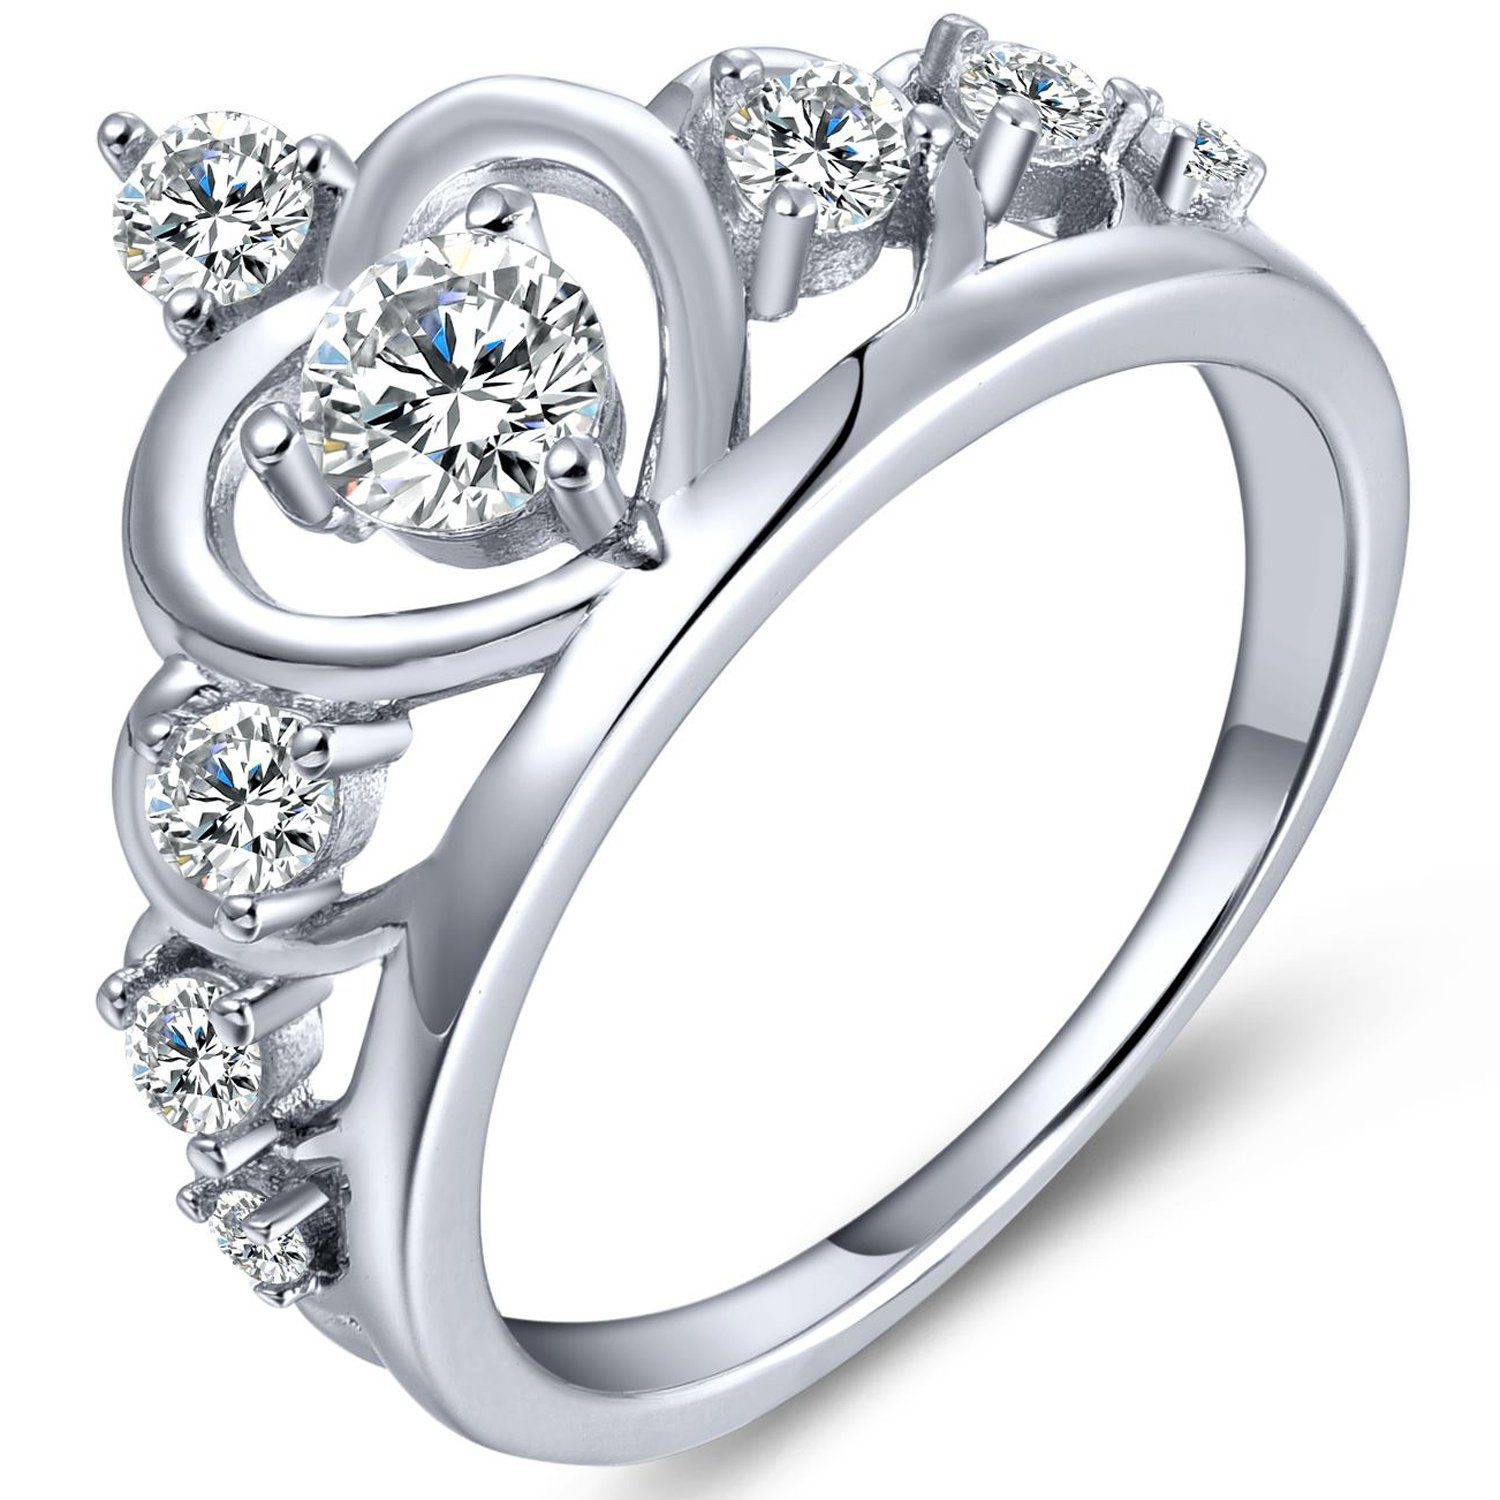 YL Women's Silver Queen Heart Crown Ring Anniversary 925 Sterling Silver Cubic Zirconia-size 7